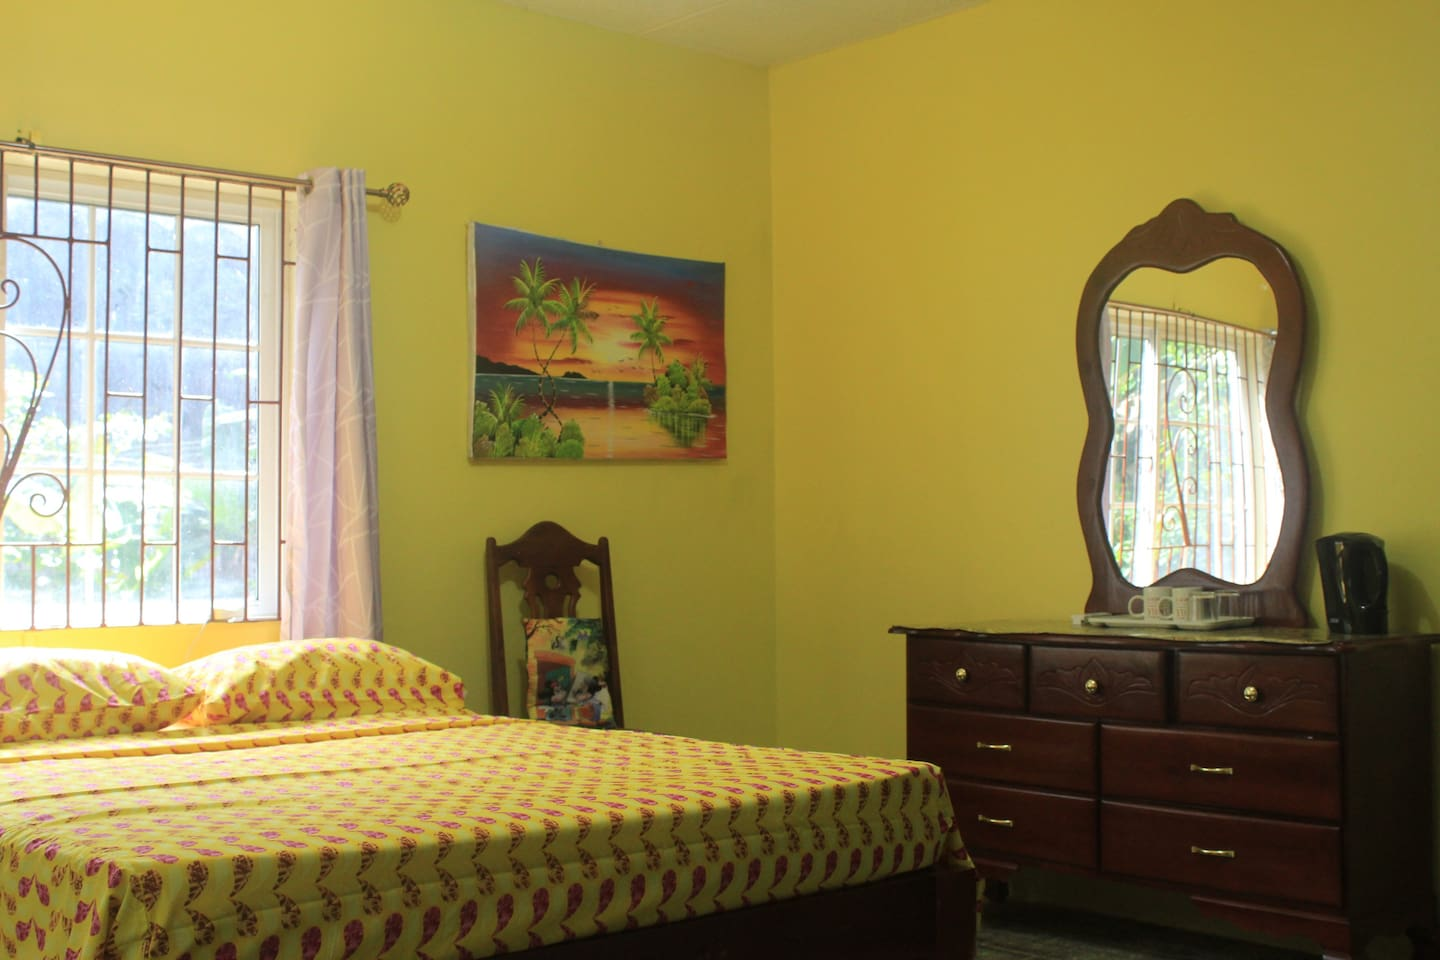 The Ackee Tree Room with a shared bathroom